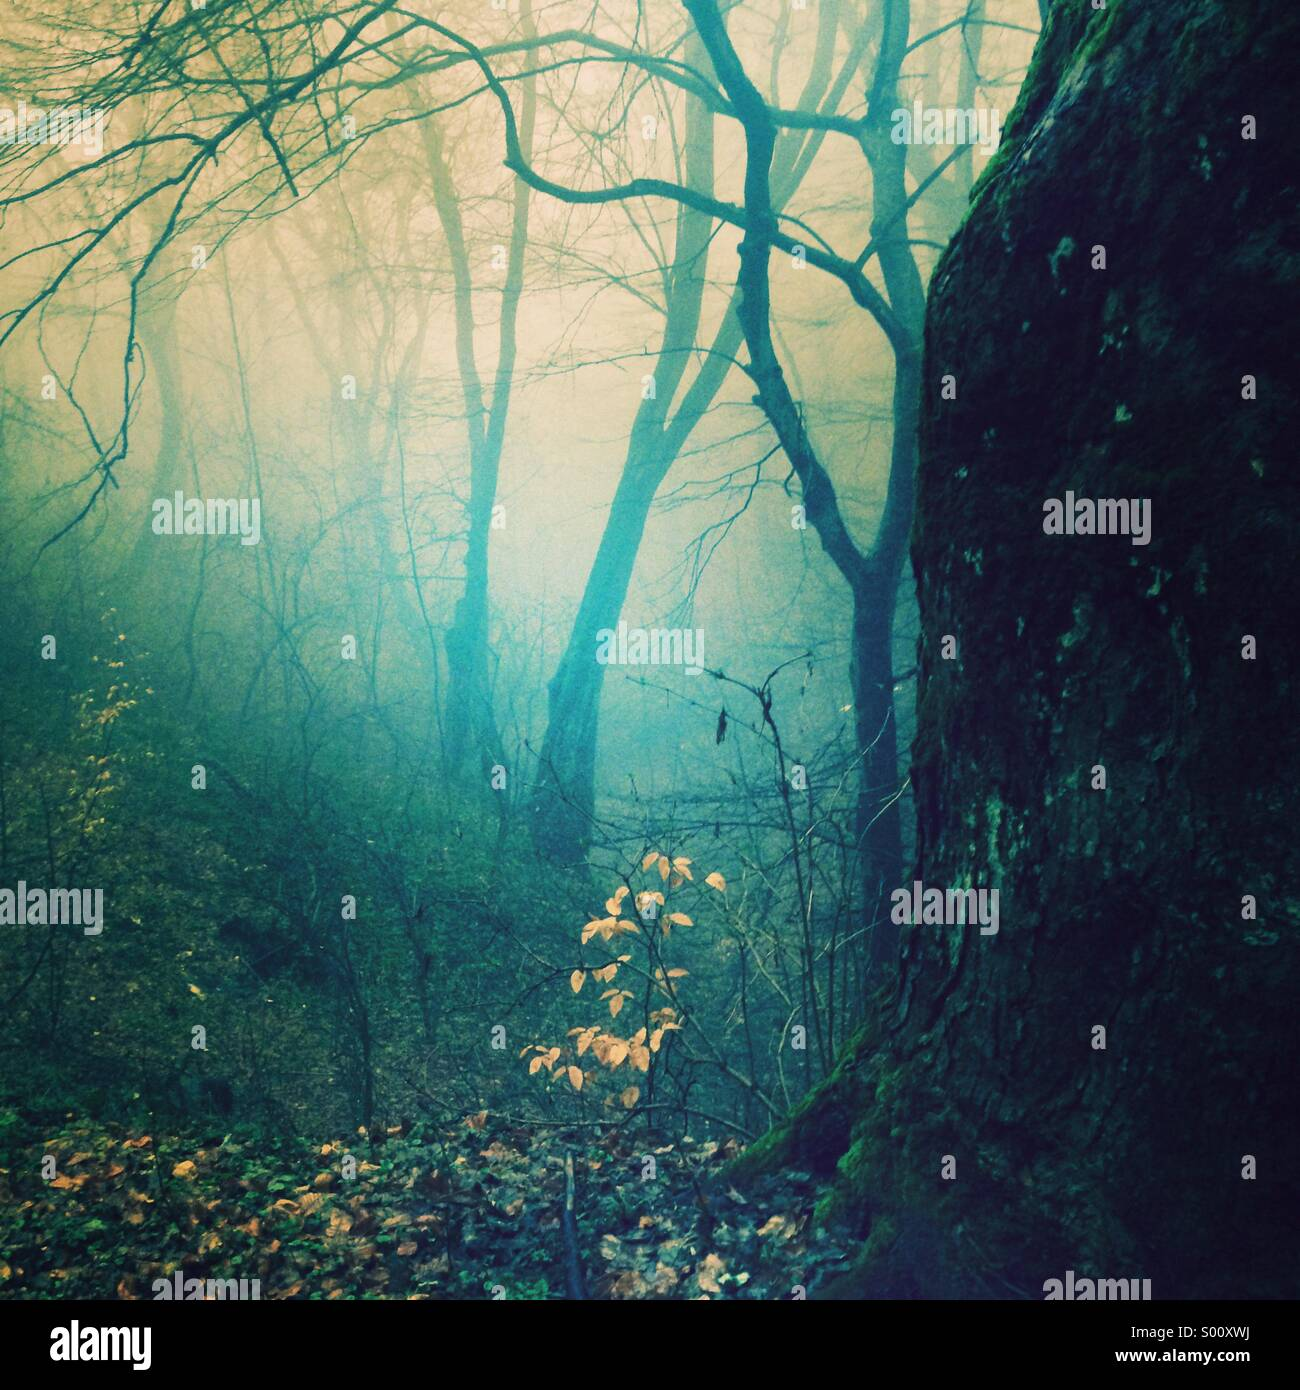 Lost in a misty fairytale - Stock Image